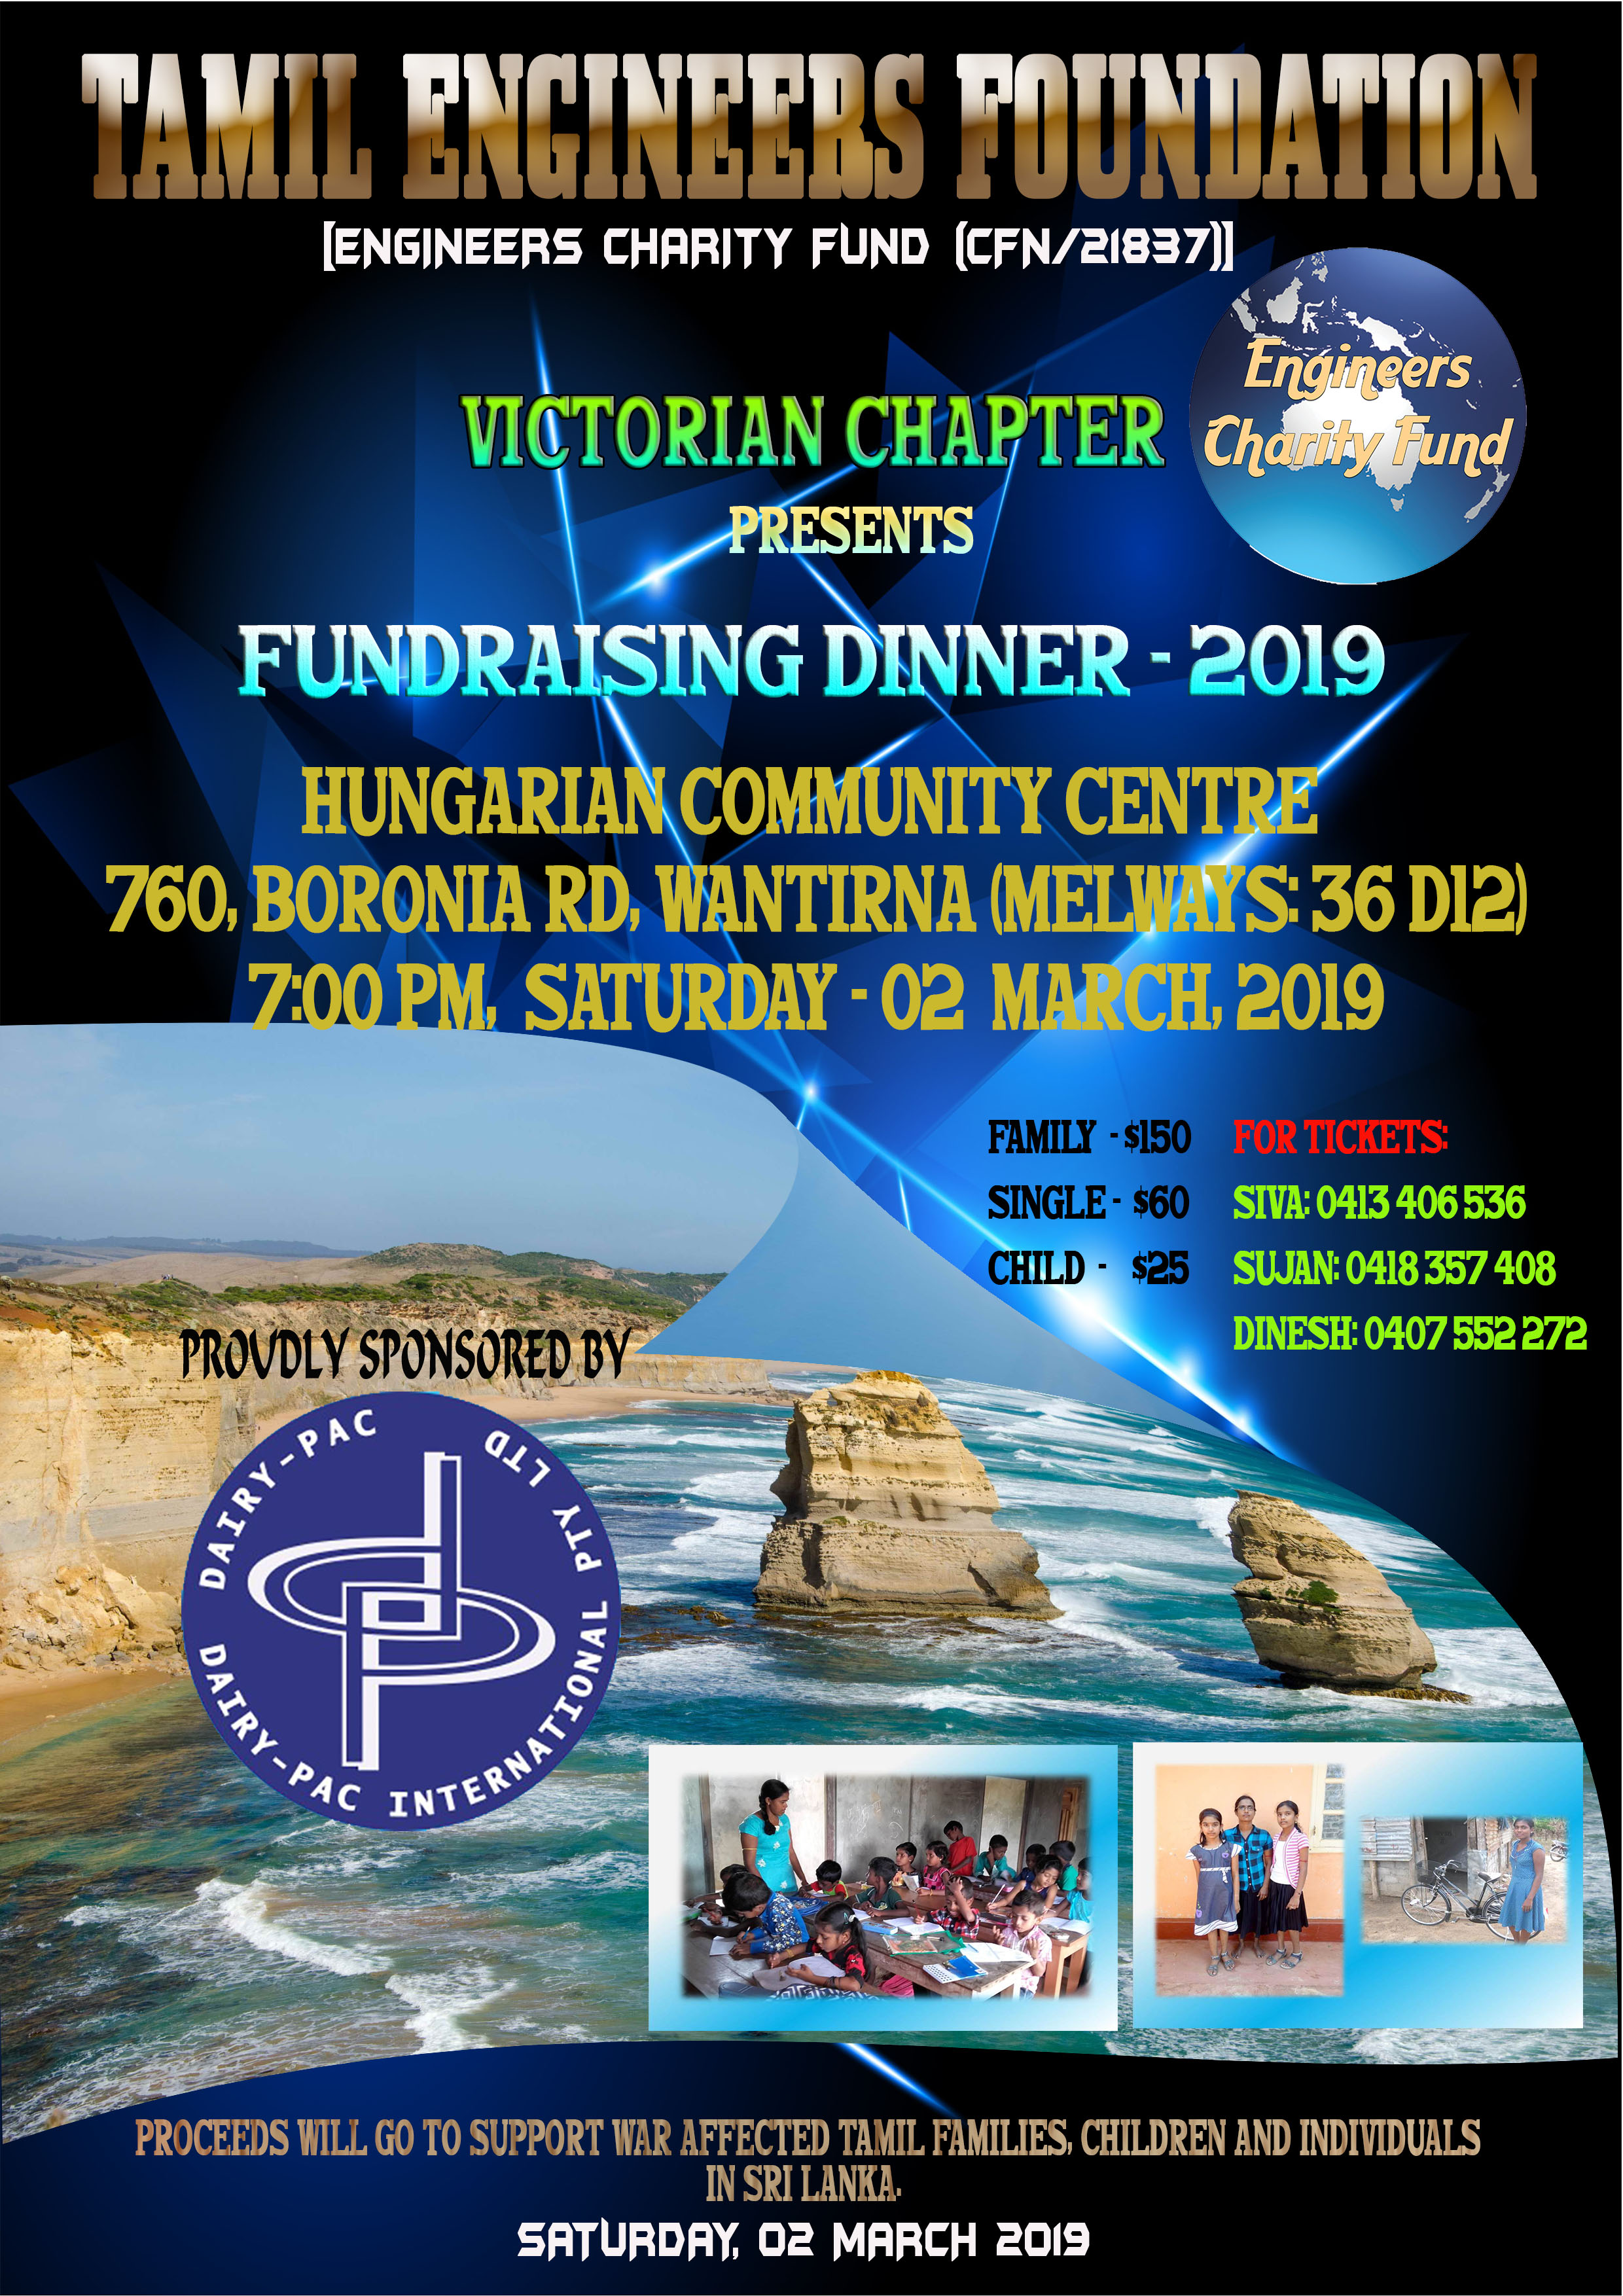 TEF Victoria Chapter Fundraising Dinner - 2019